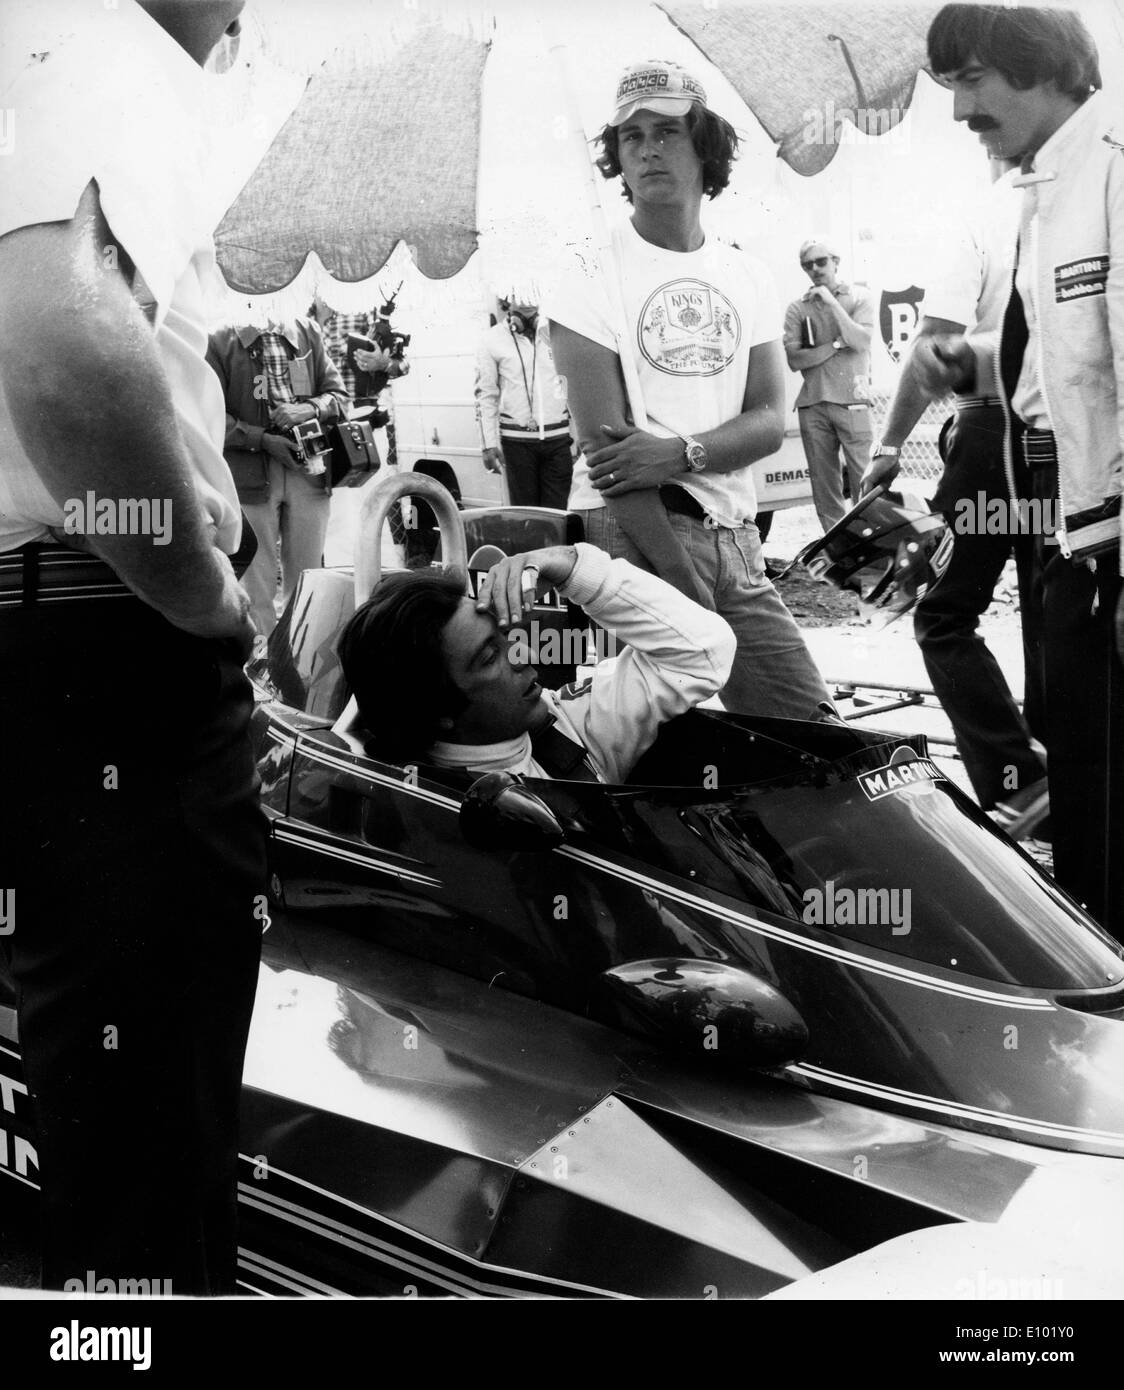 Actor AL PACINO filming Bobby Deerfield on the Bugatti Circuit in Le Mans, France August 5, 1976 - Stock Image